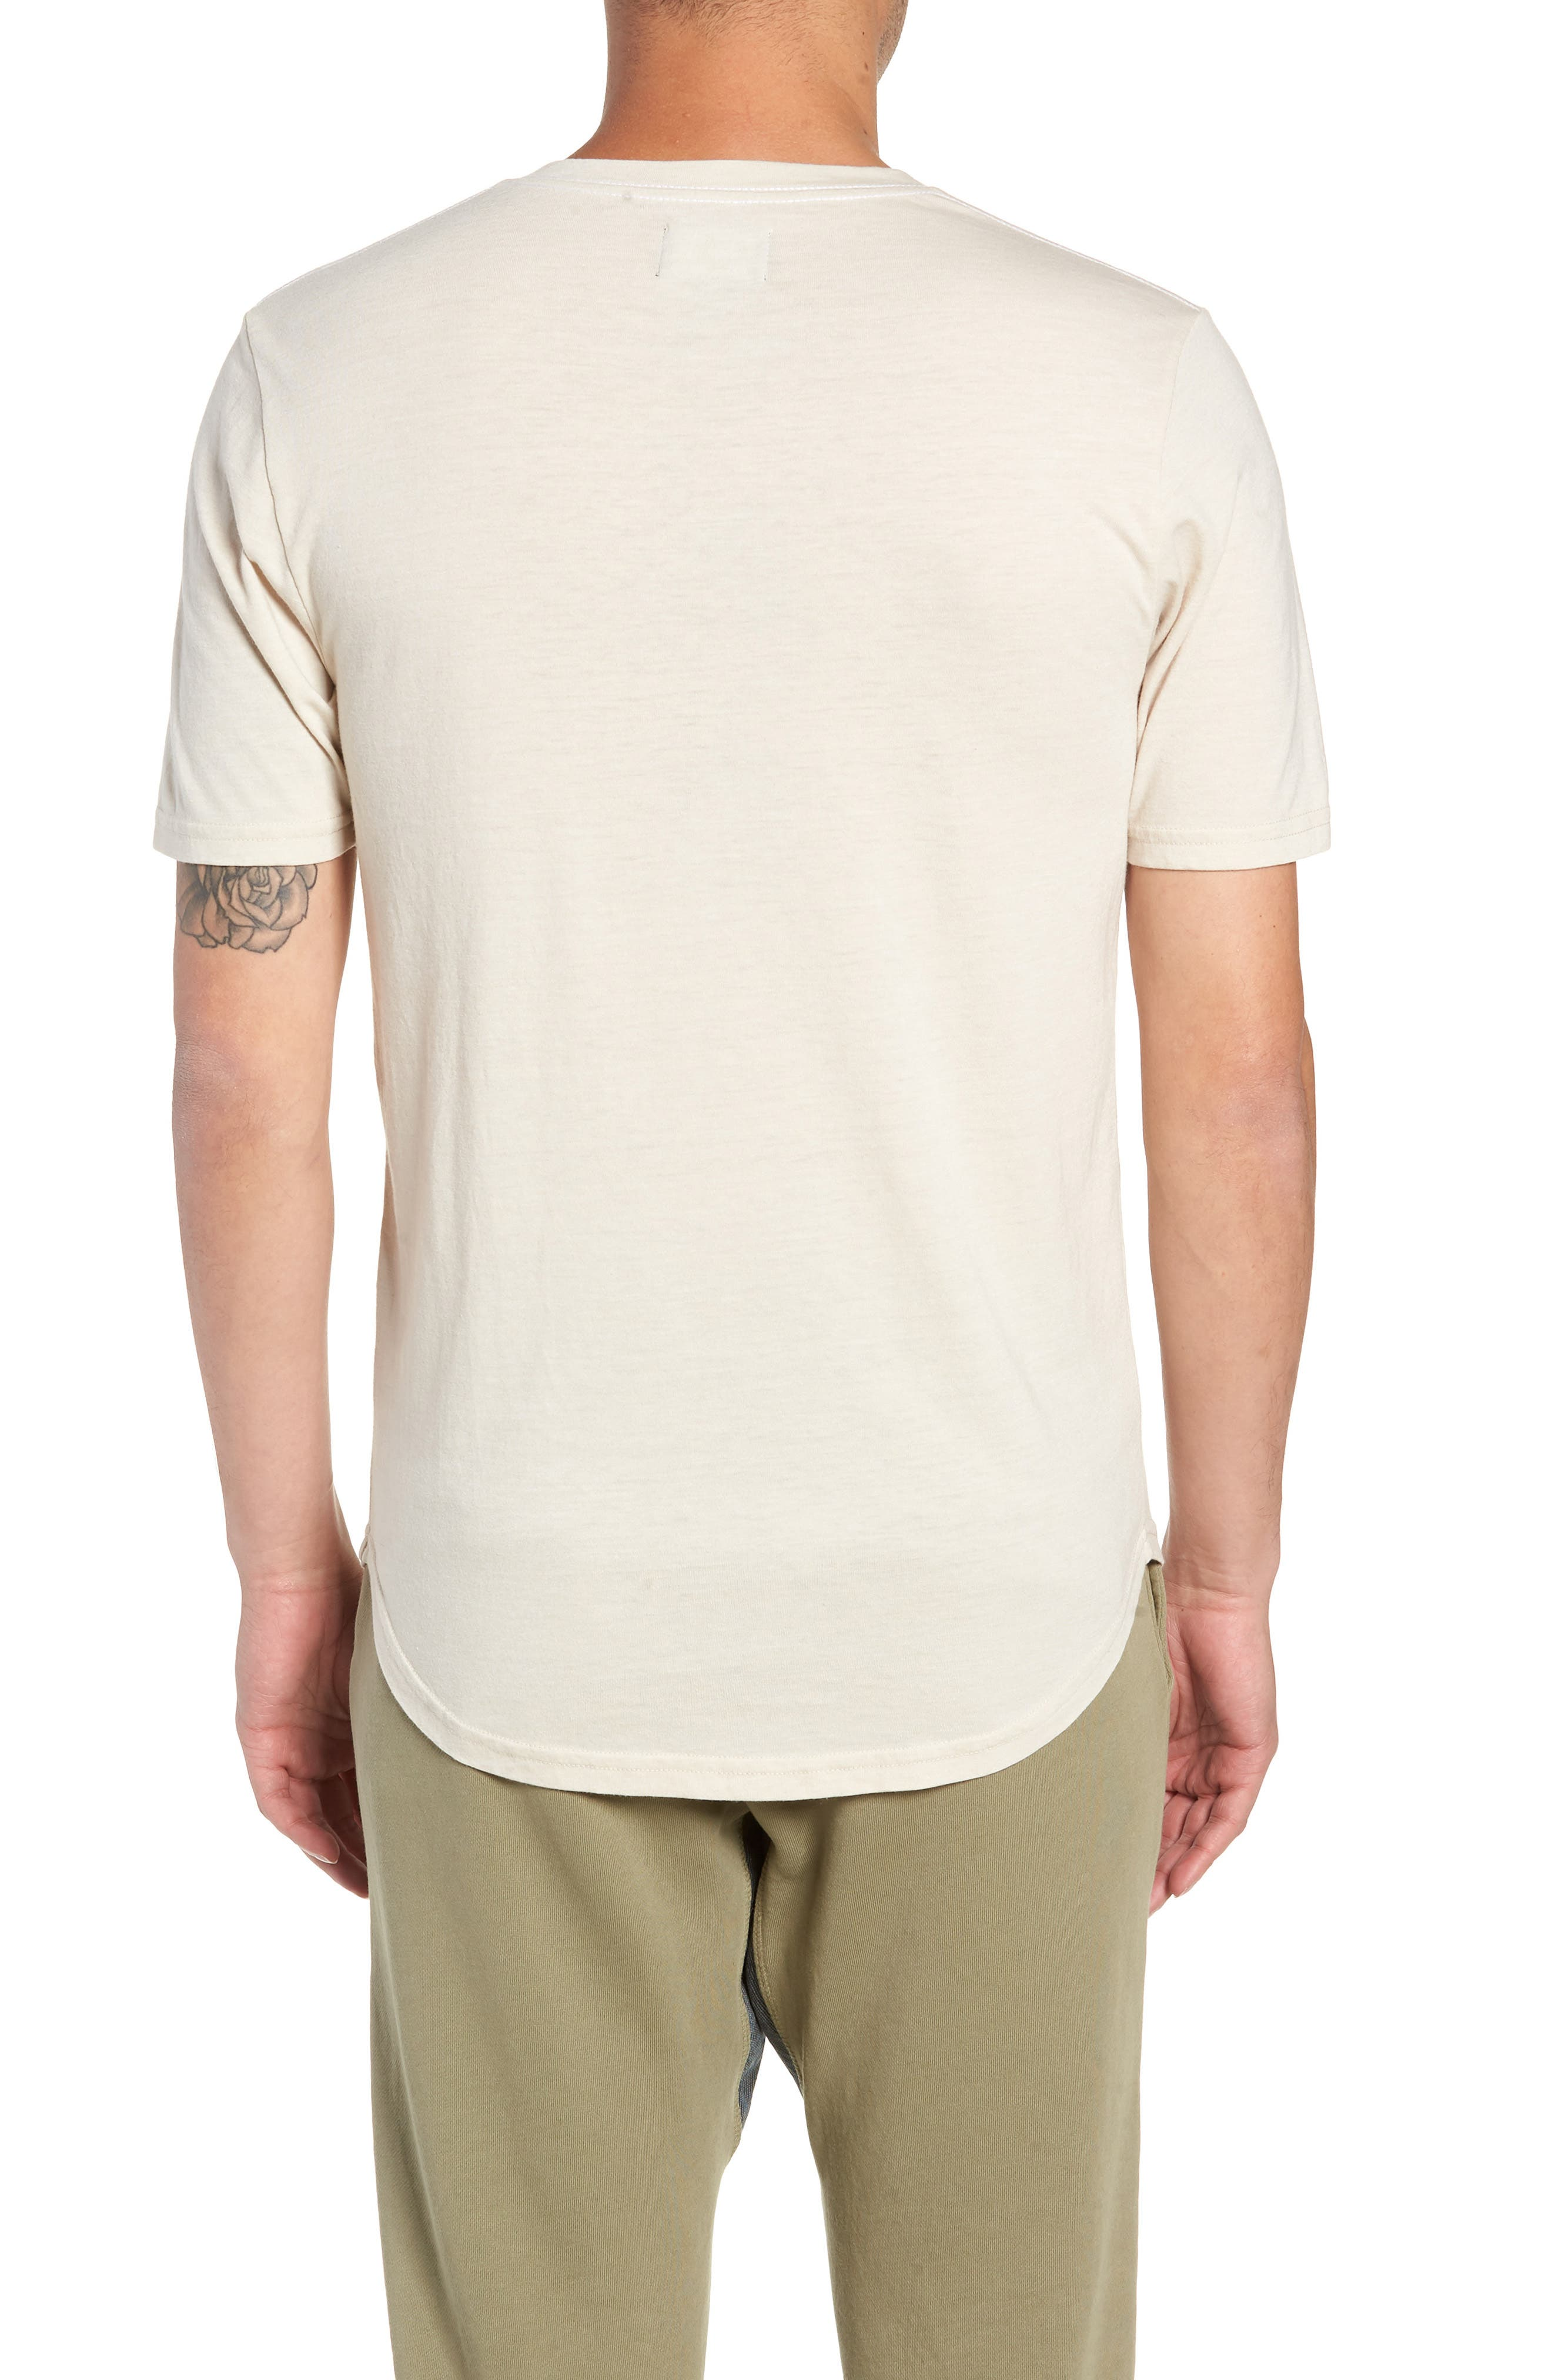 GOODLIFE, Scallop Triblend V-Neck T-Shirt, Alternate thumbnail 2, color, OYSTER